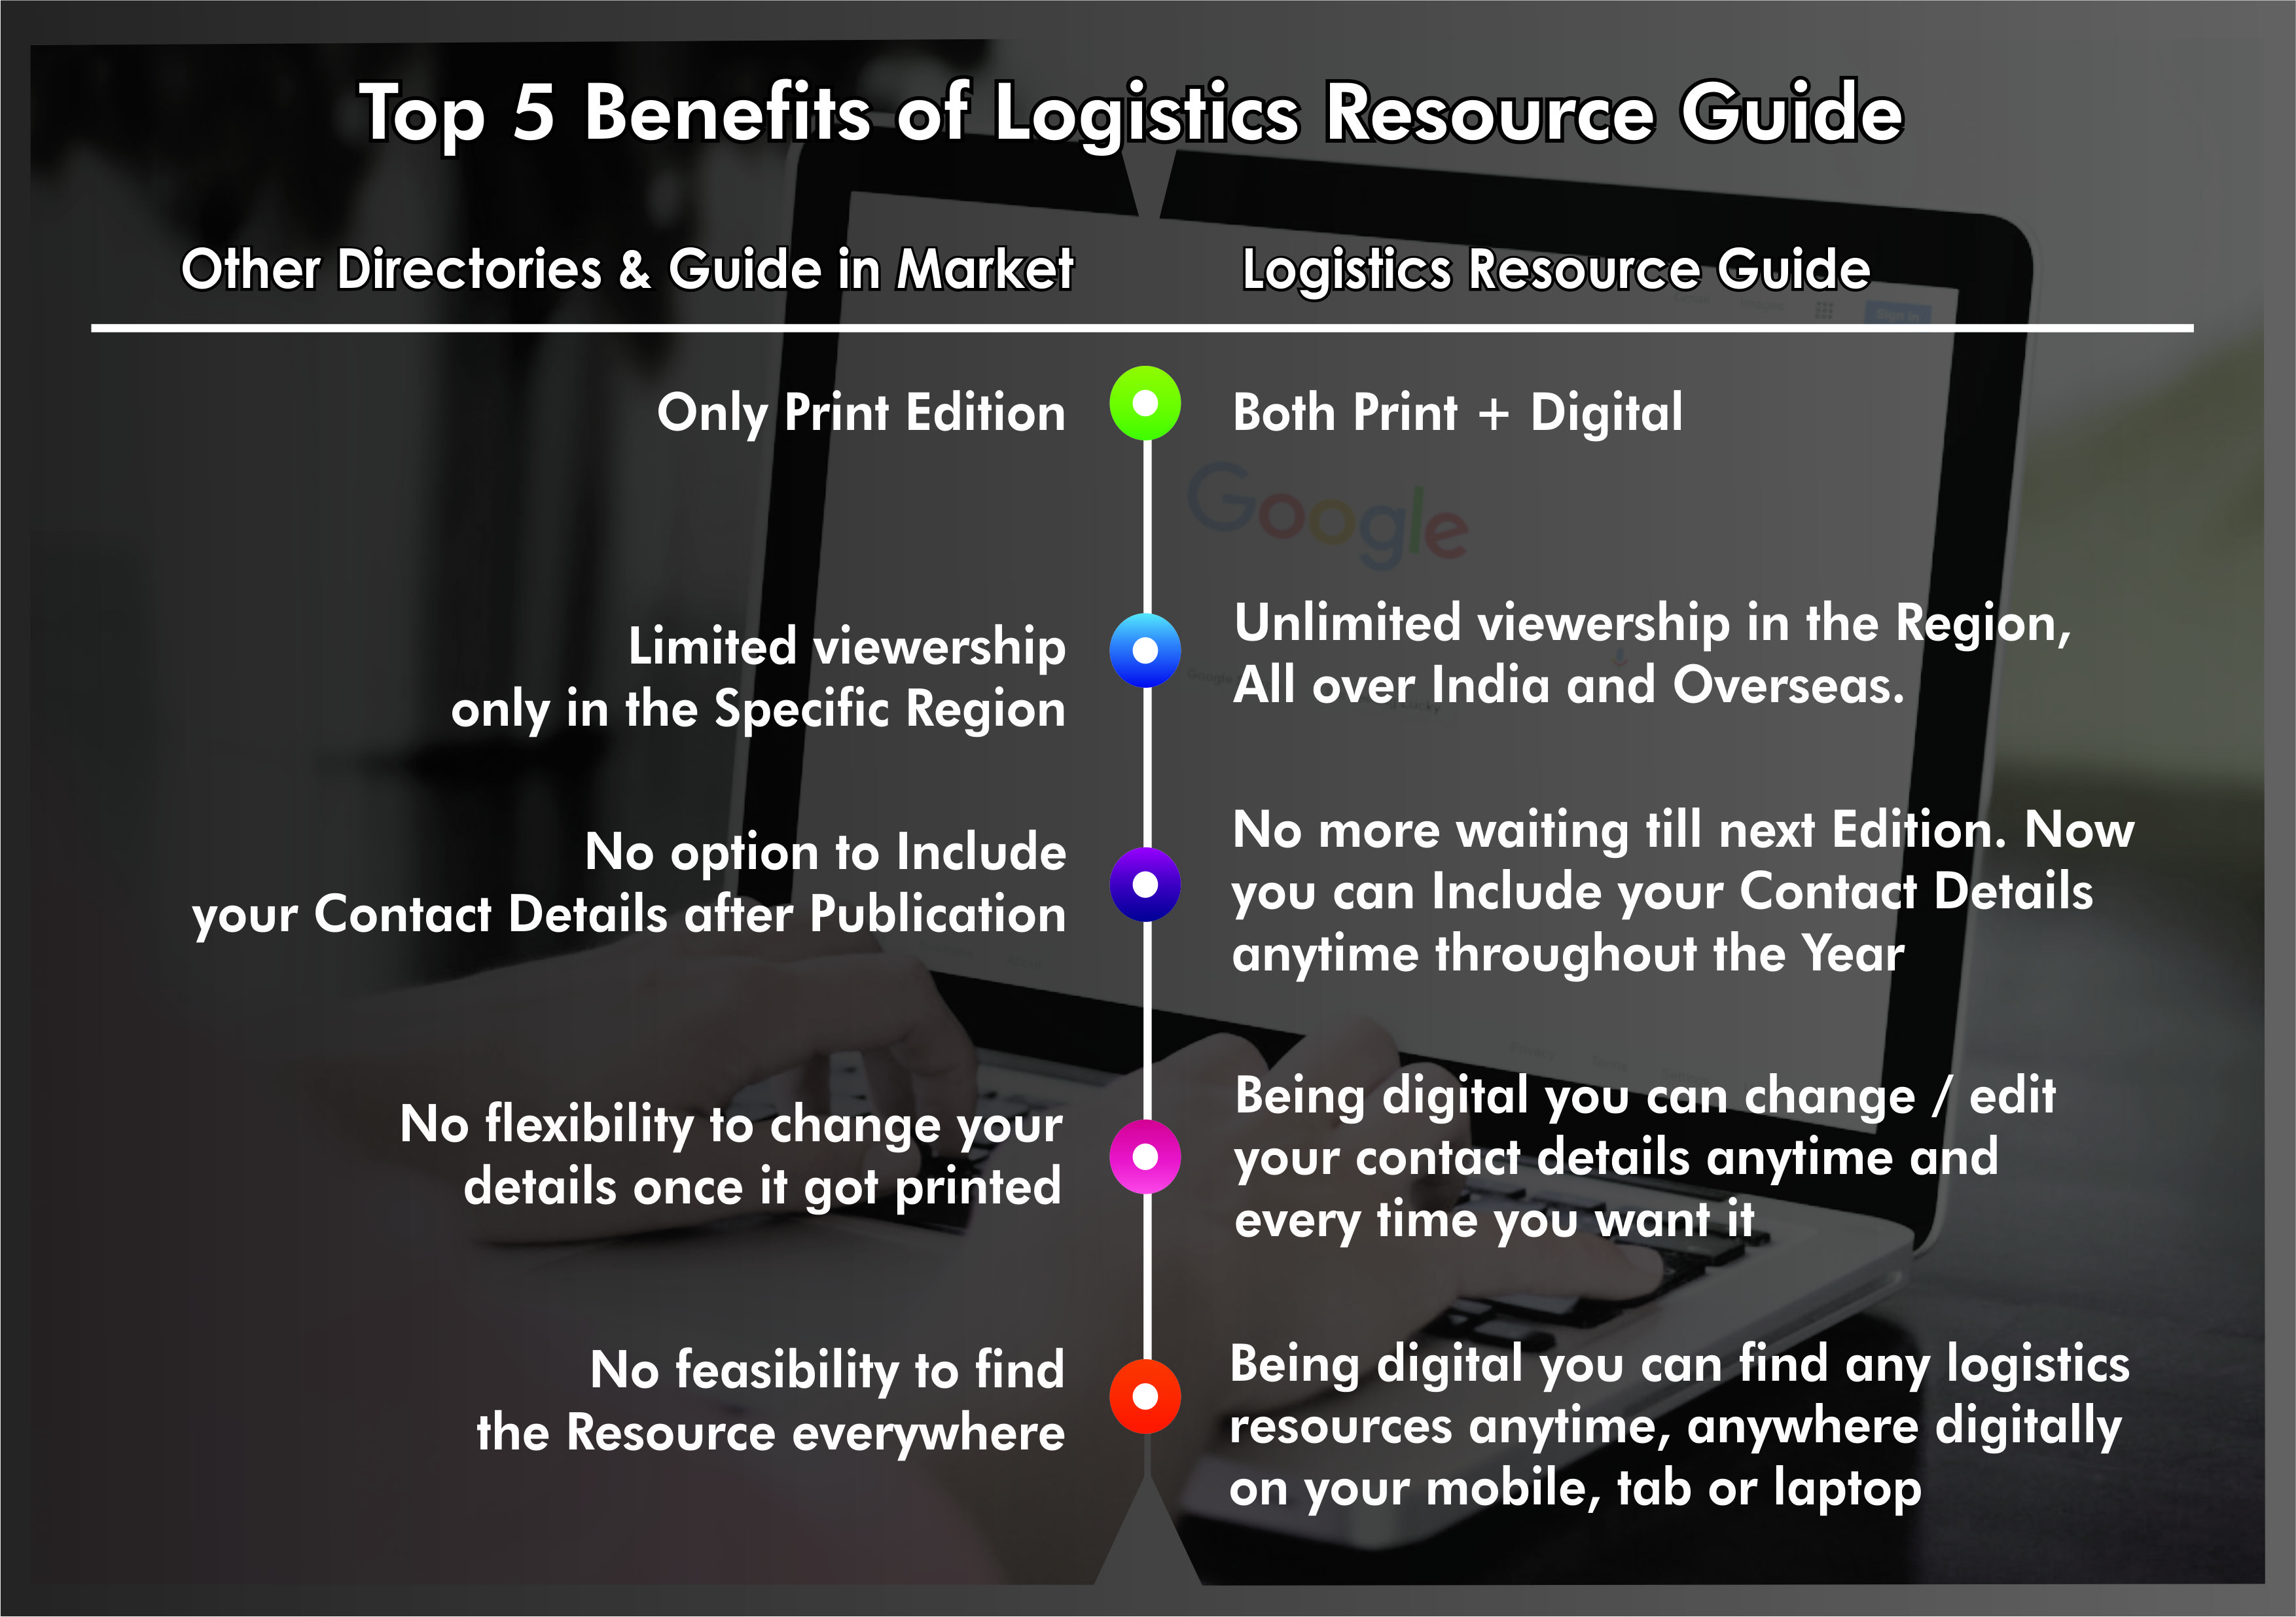 Top 5 Benefits of Logistics Resource Guide